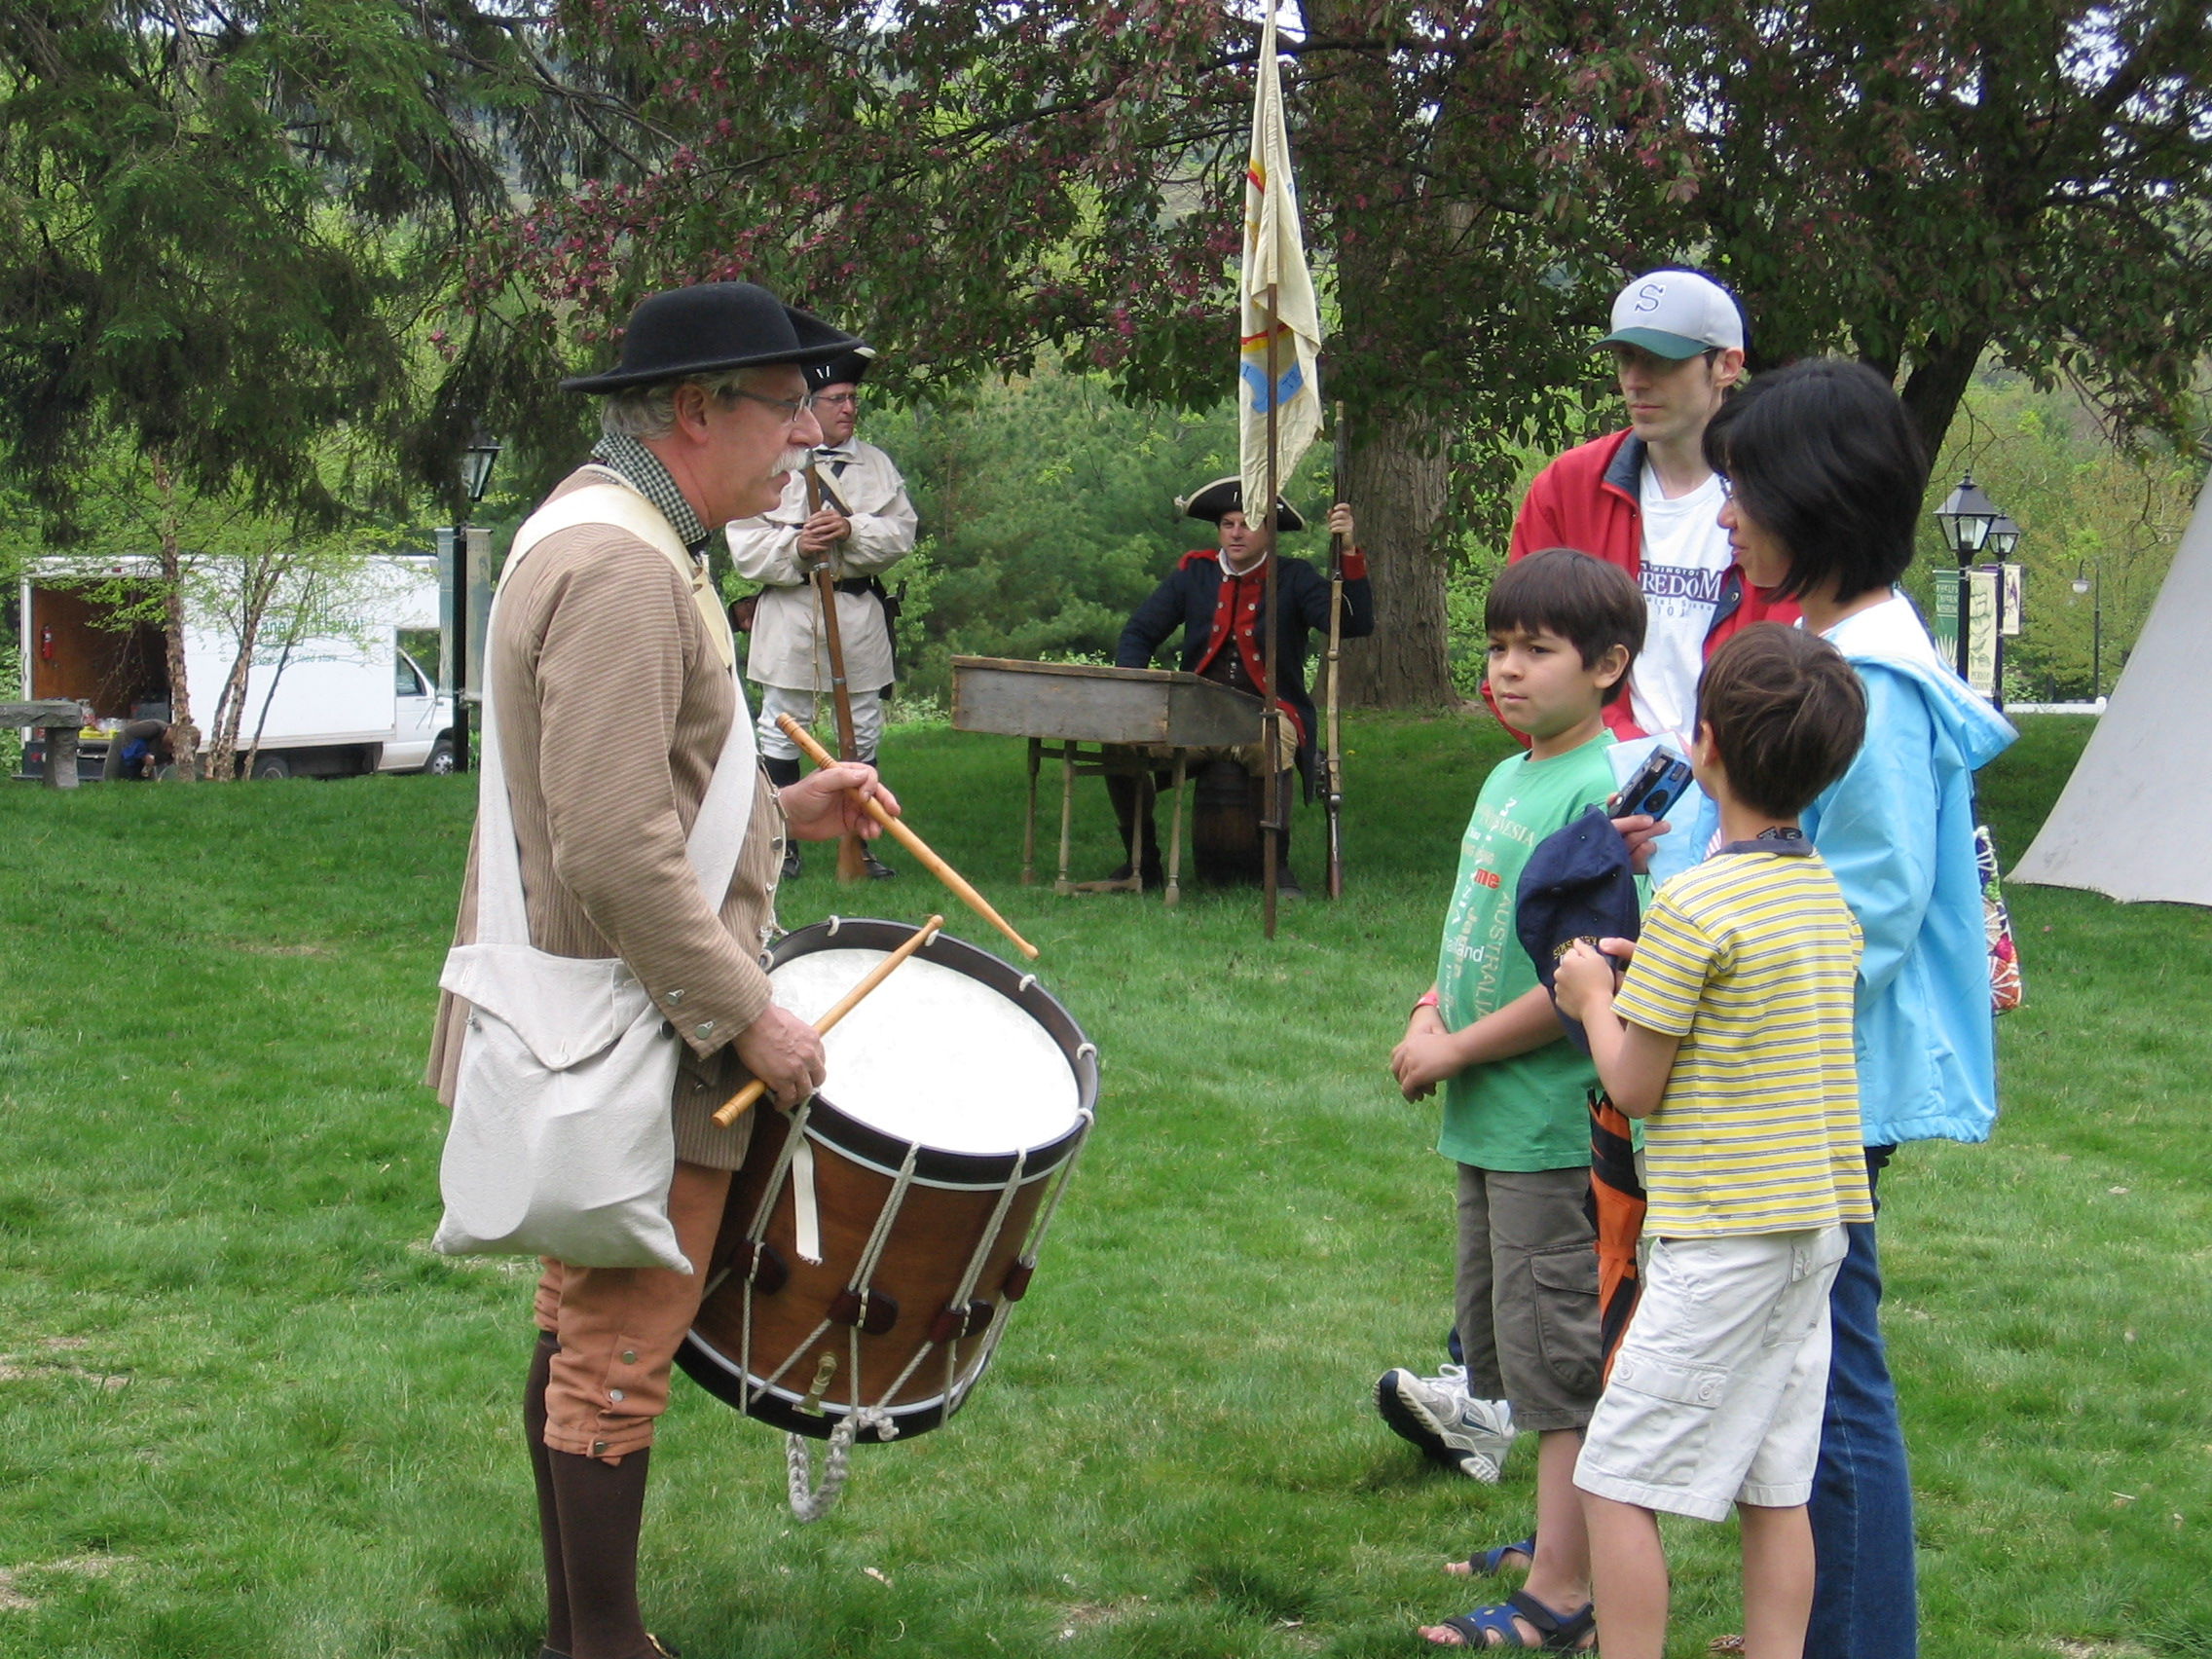 The annual Simsbury Muster, a living-history celebration, recreates and interprets the mustering of the town's militia in 1775 following the Battle of Lexington.